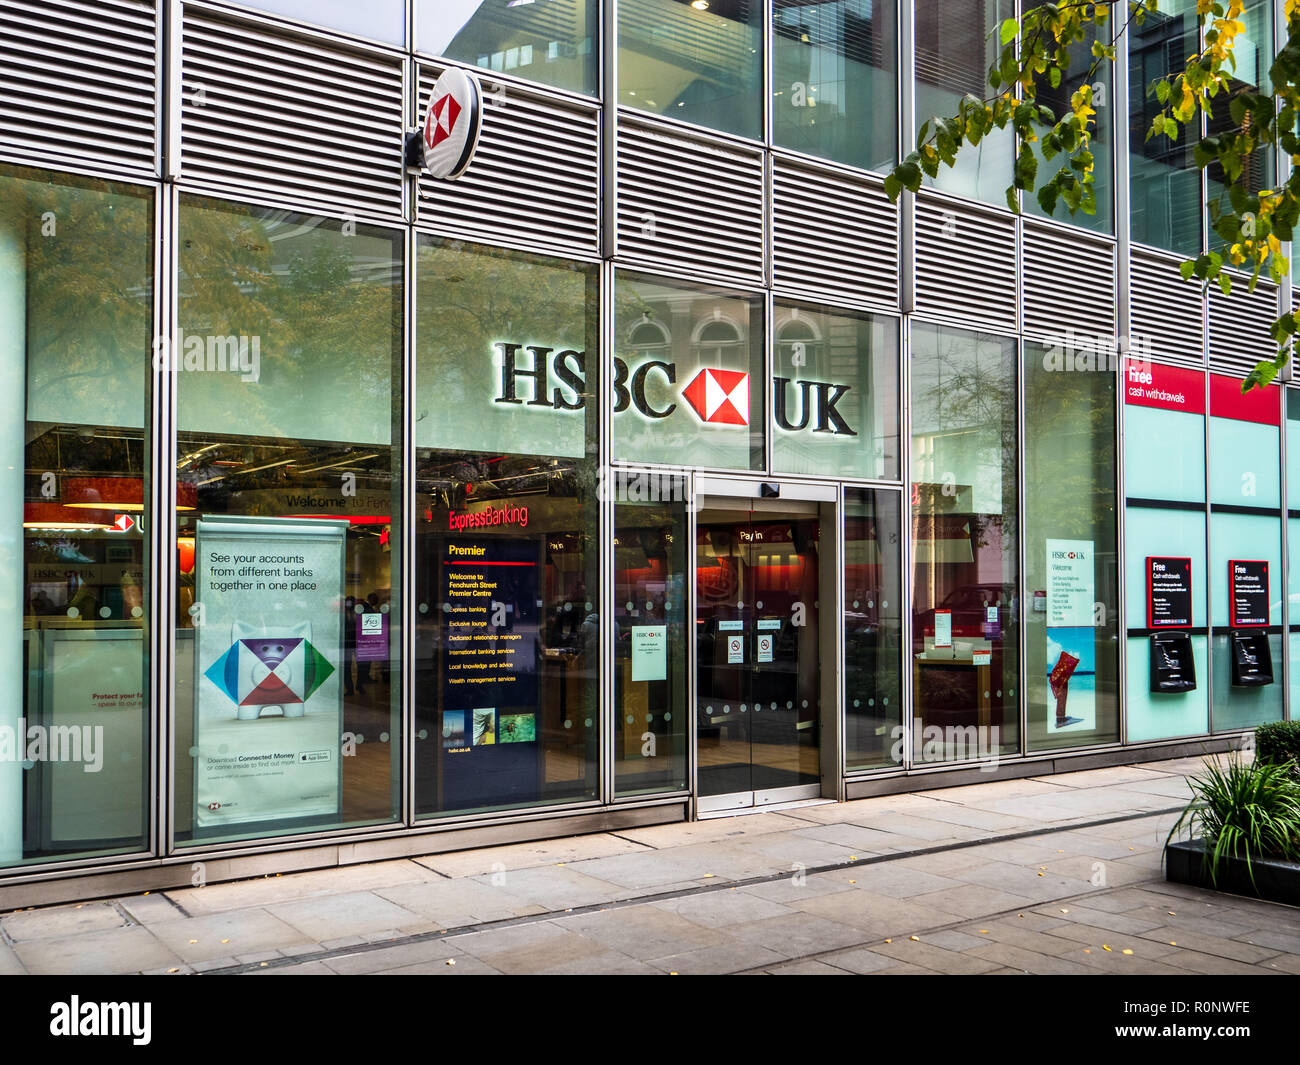 Hsbc Bank Branch Stock Photos & Hsbc Bank Branch Stock Images - Alamy